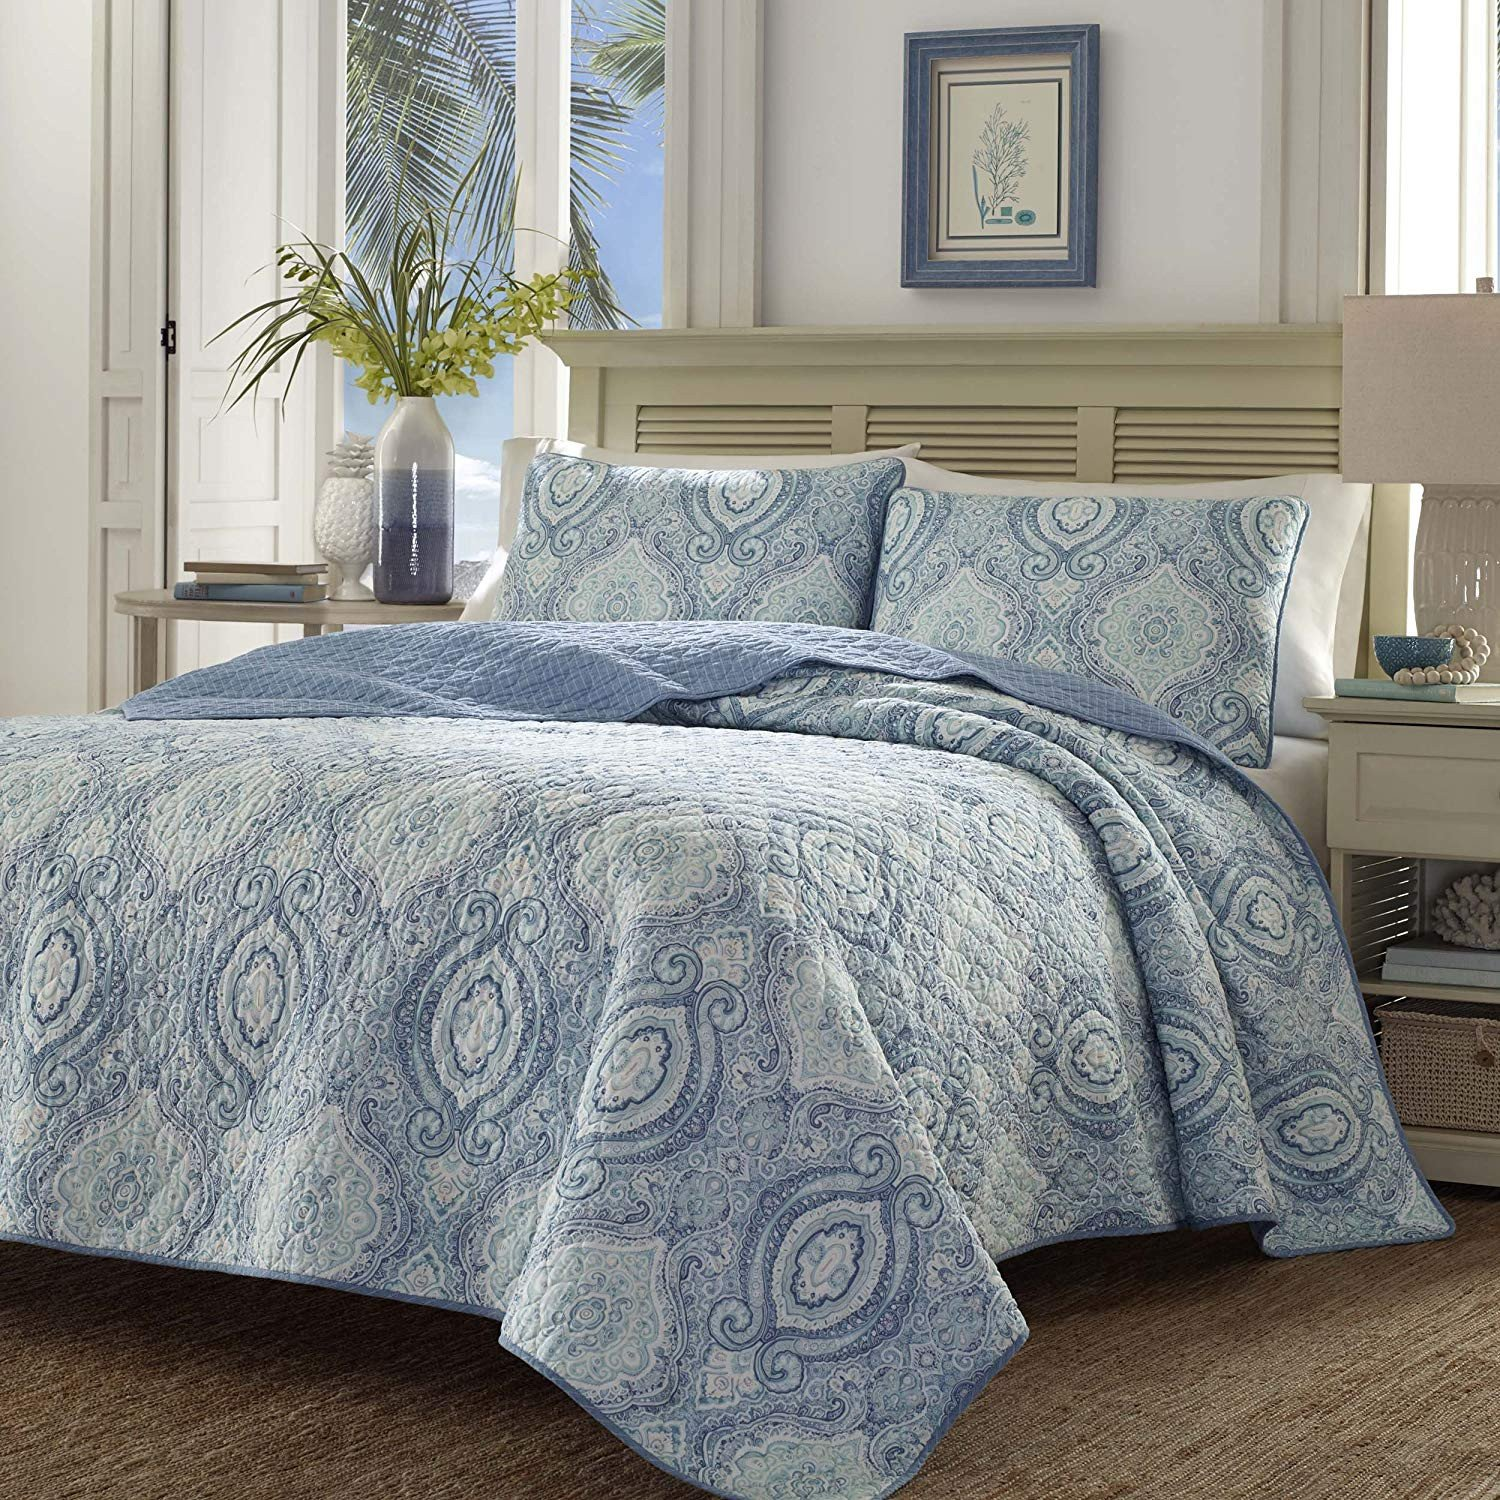 Bedroom Bedding and Curtain Set Fresh tommy Bahama Bedding Sets – Ease Bedding with Style